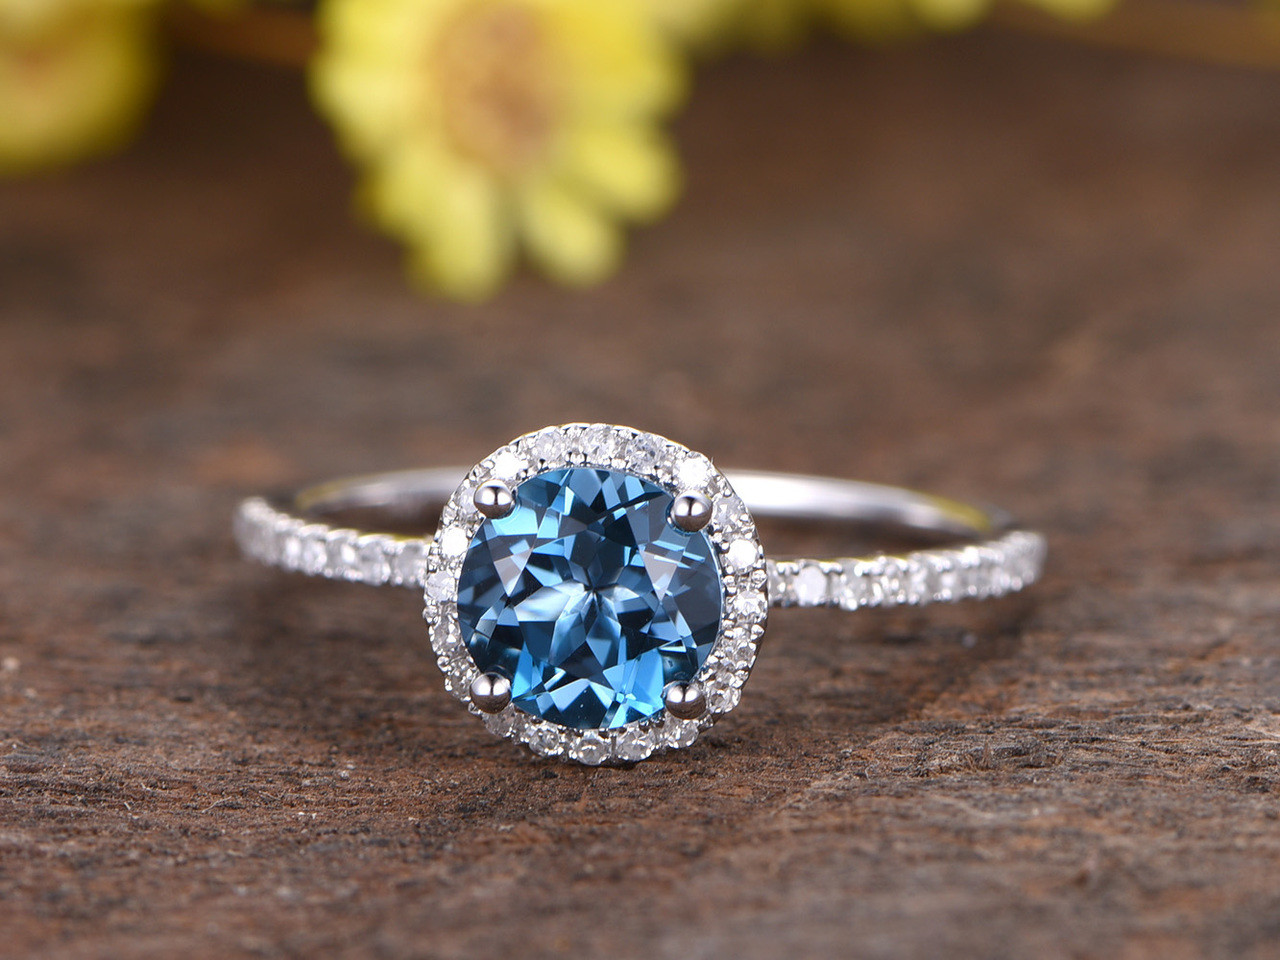 1 2 Carat London Blue Topaz Engagement Ring With Diamond 14k White Gold Halo Stacking Band Bbbgem